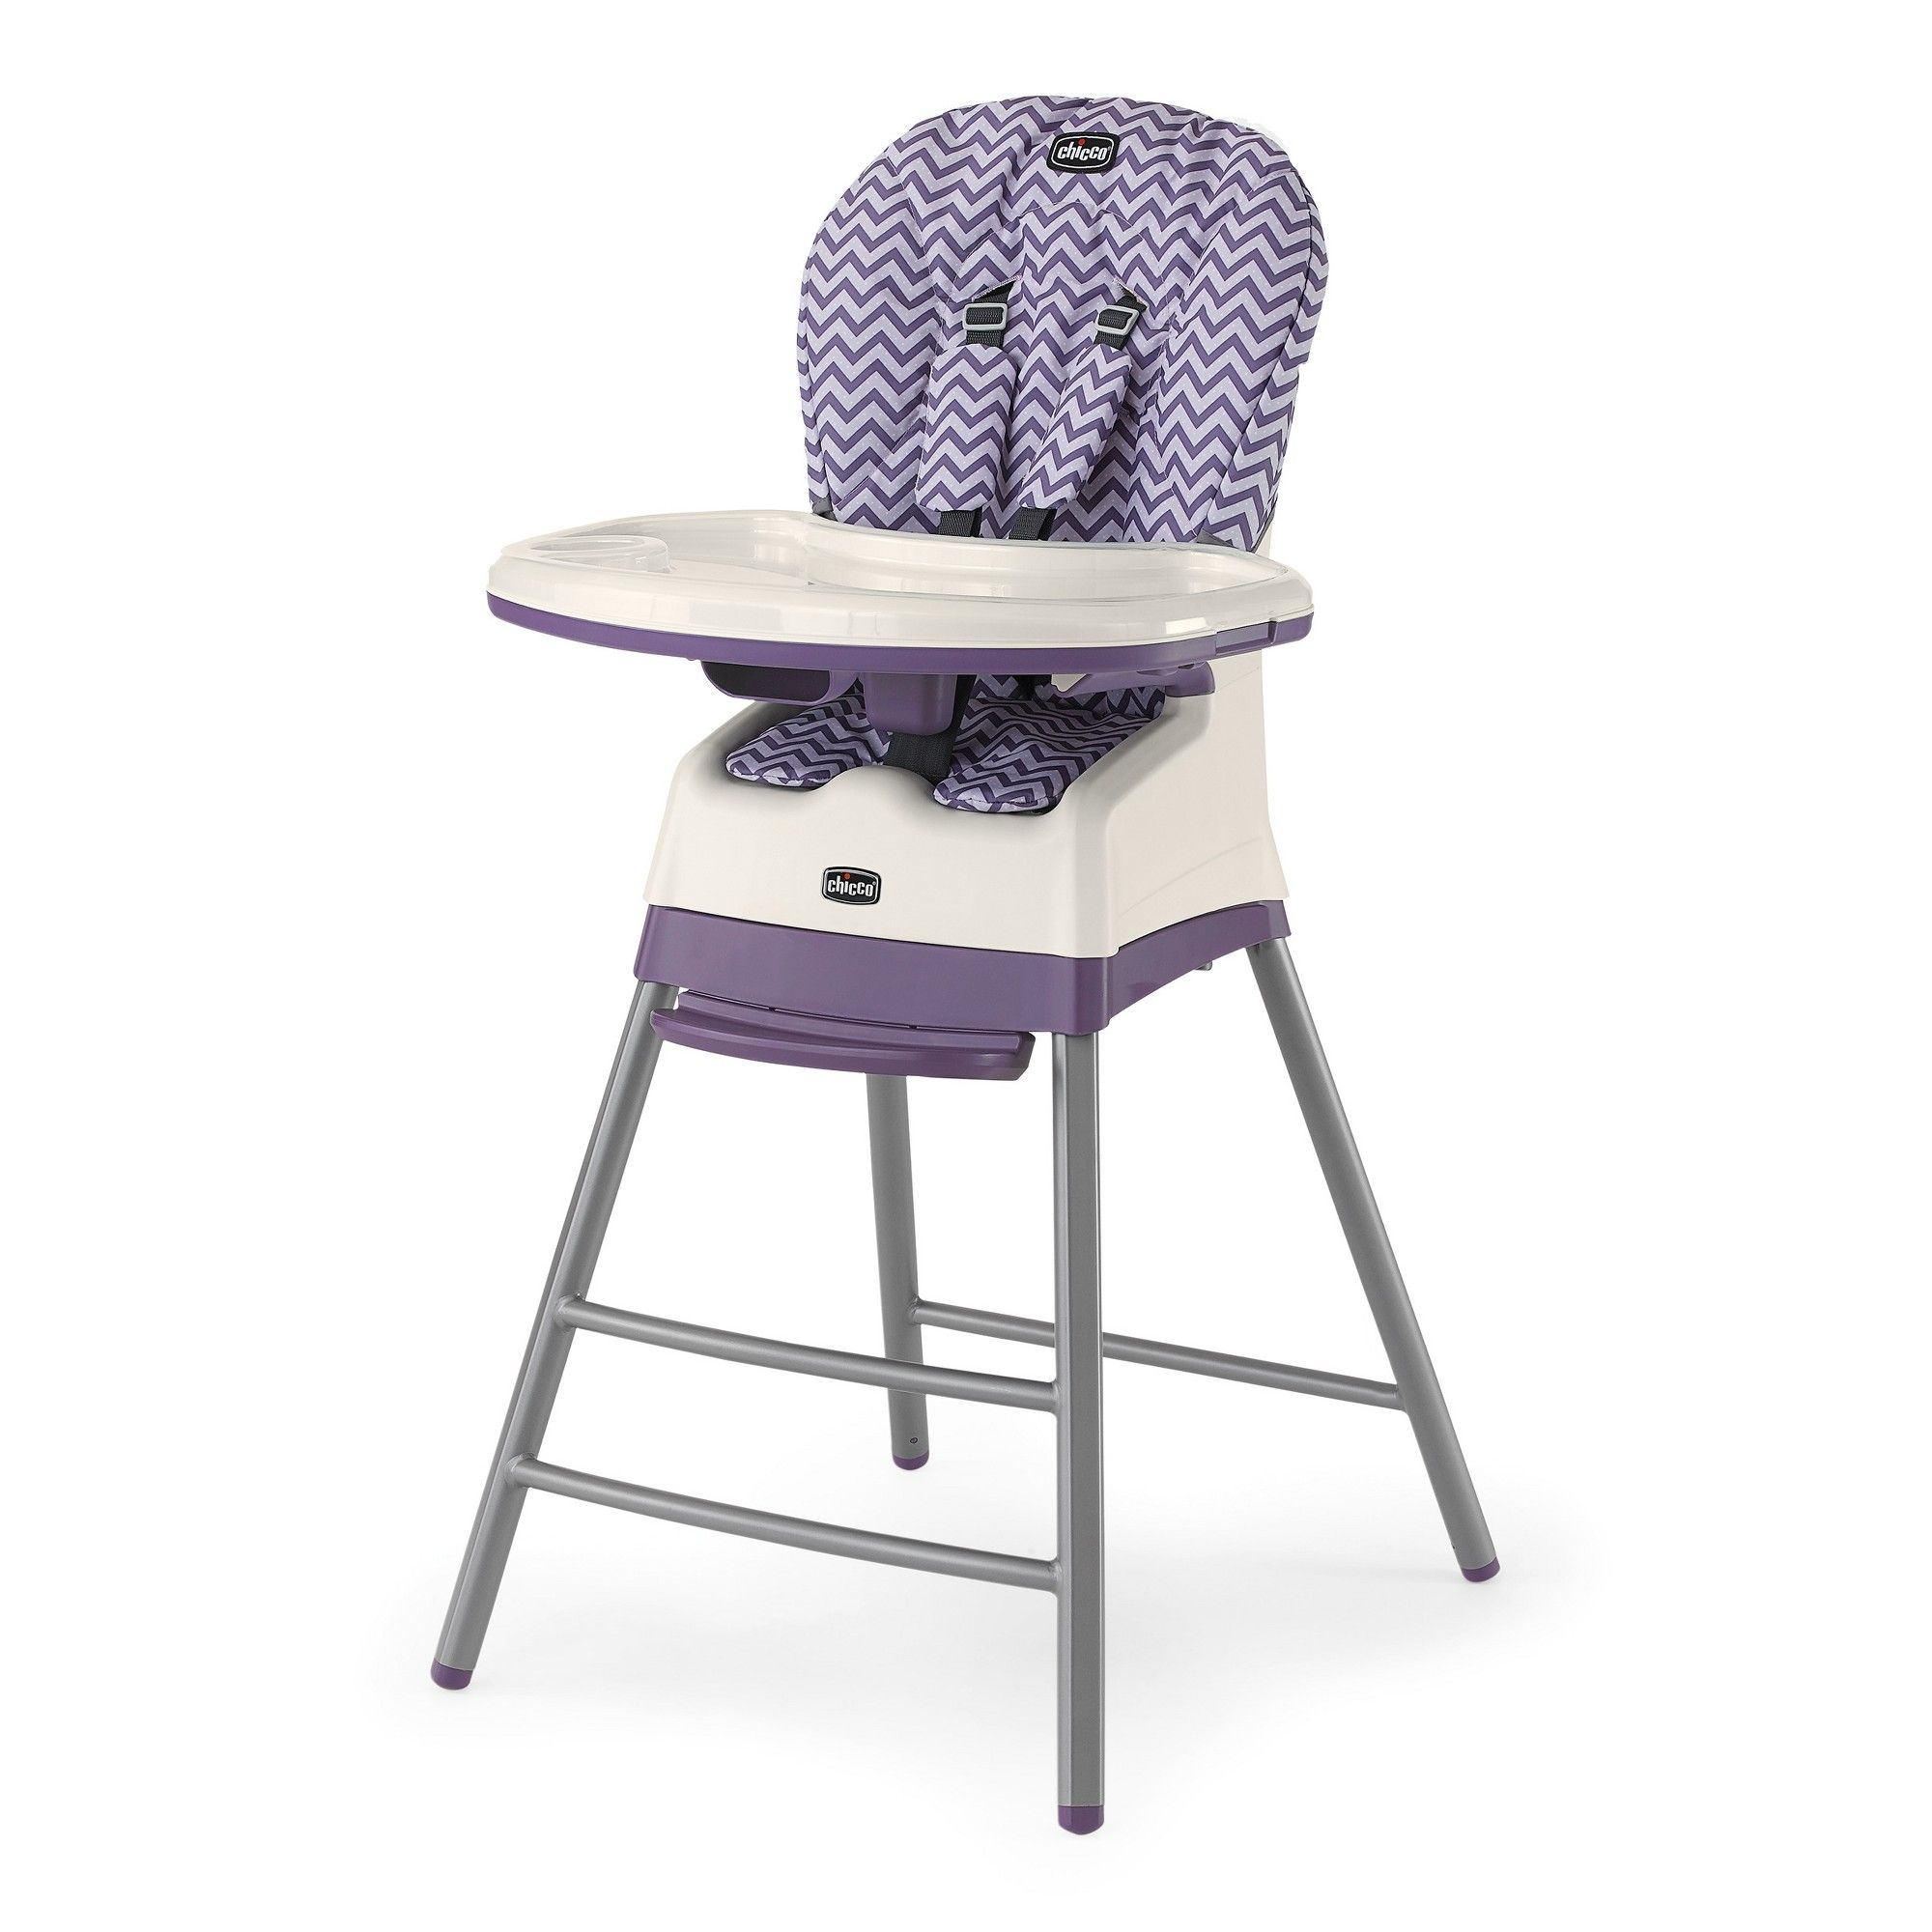 Graco high chair 4 in 1 chicco stack  in  high chair mulberry pink  high chairs and